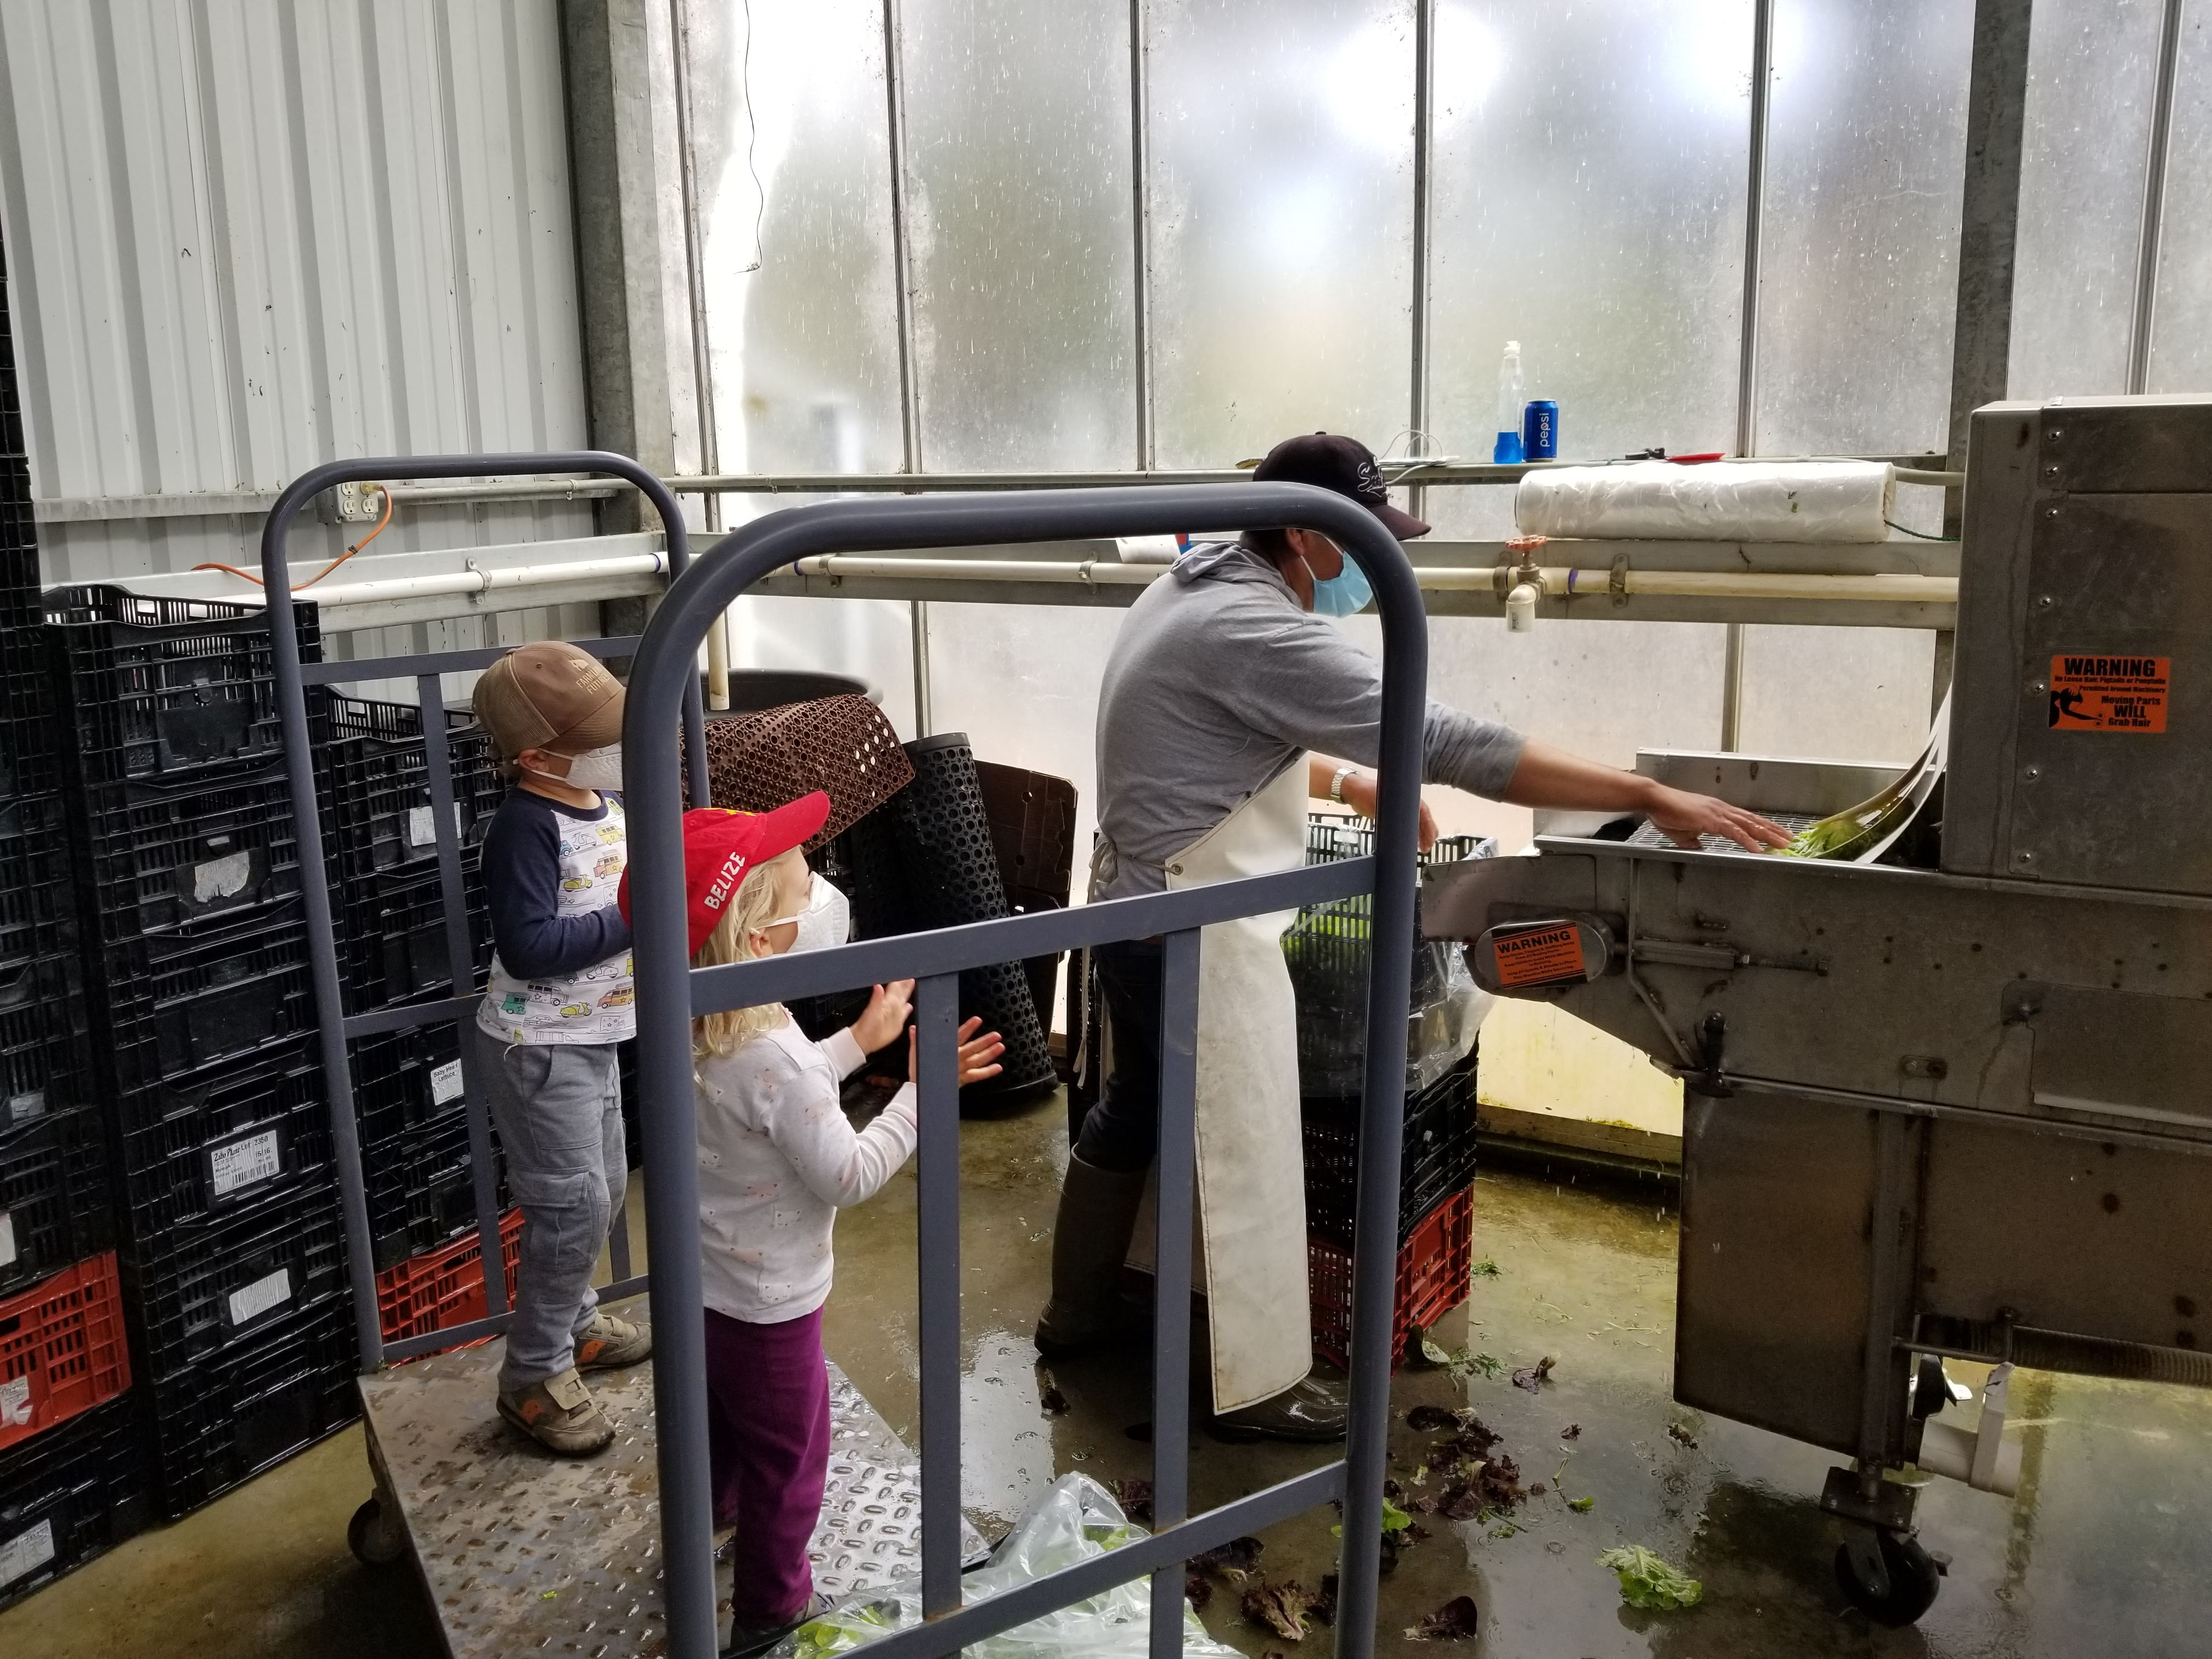 Farm News for July 9, 2020